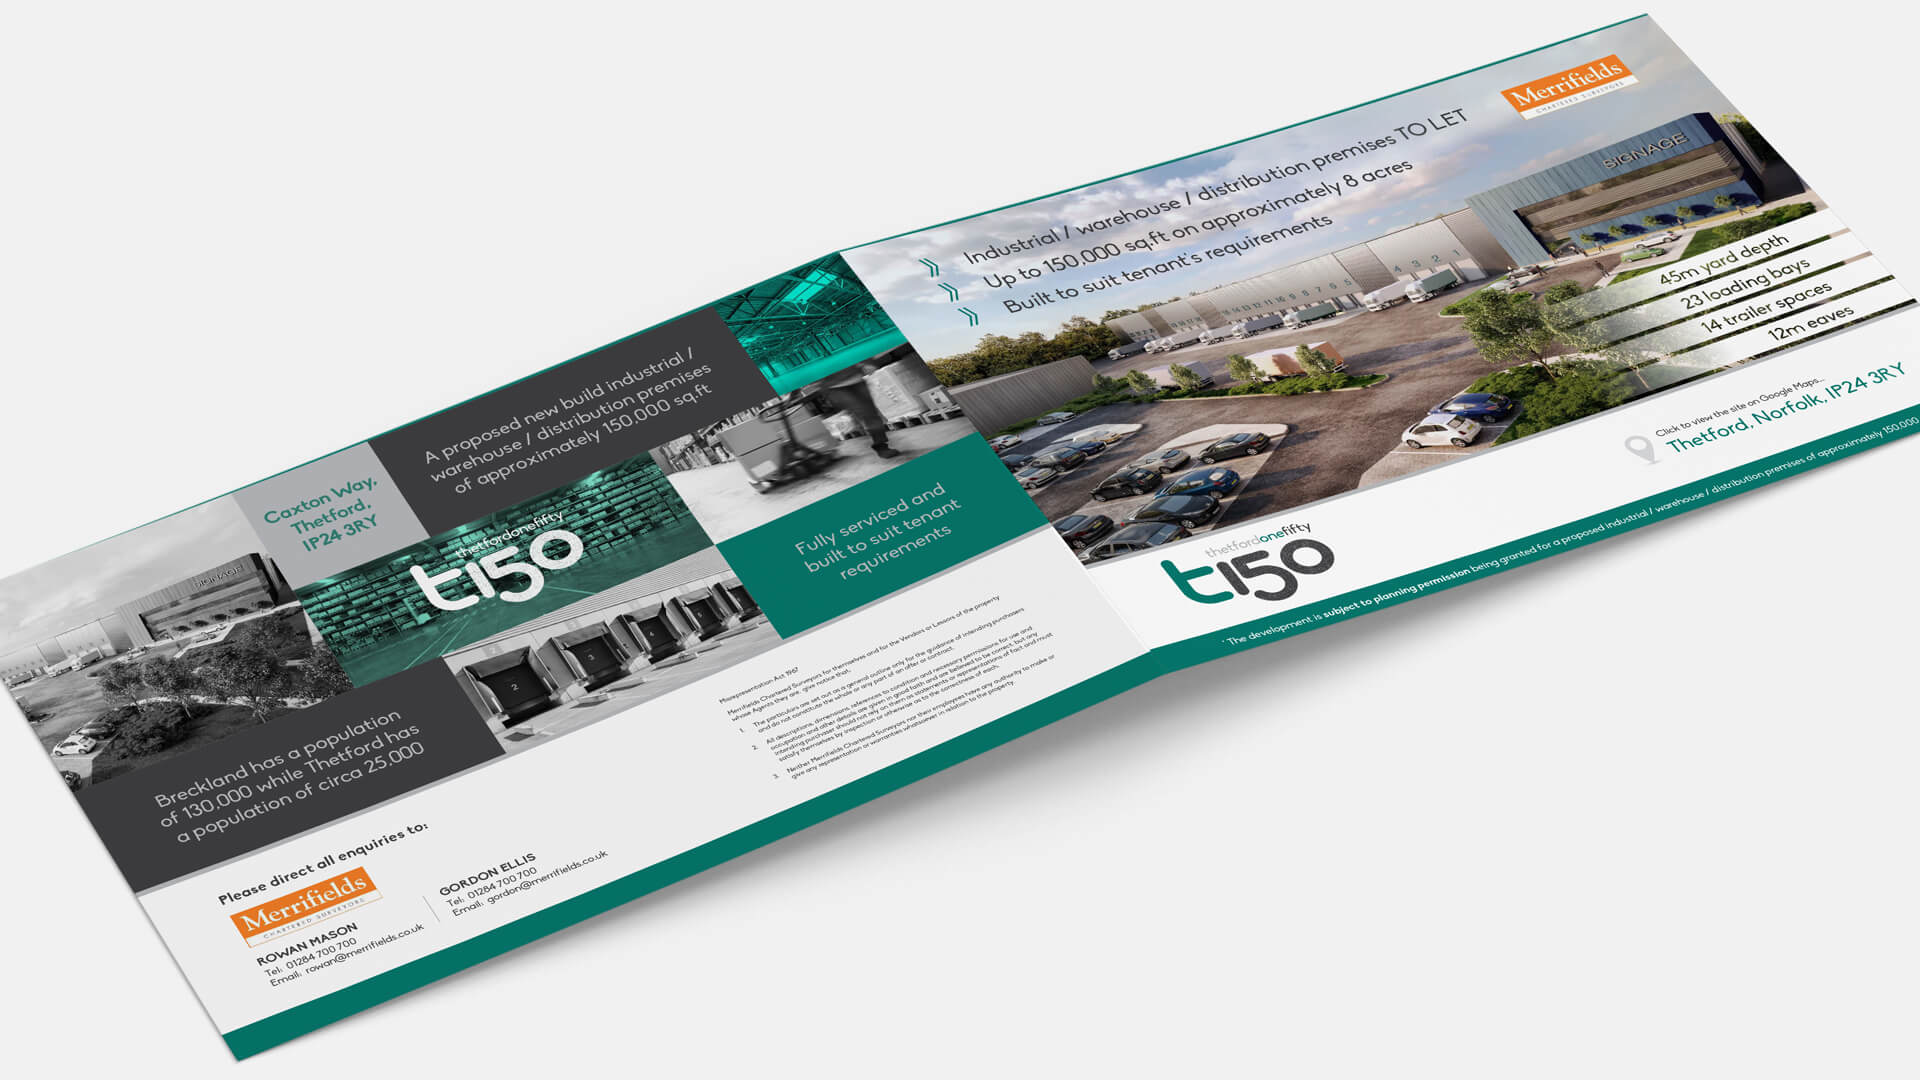 T150, Thetford Marketing Brochure